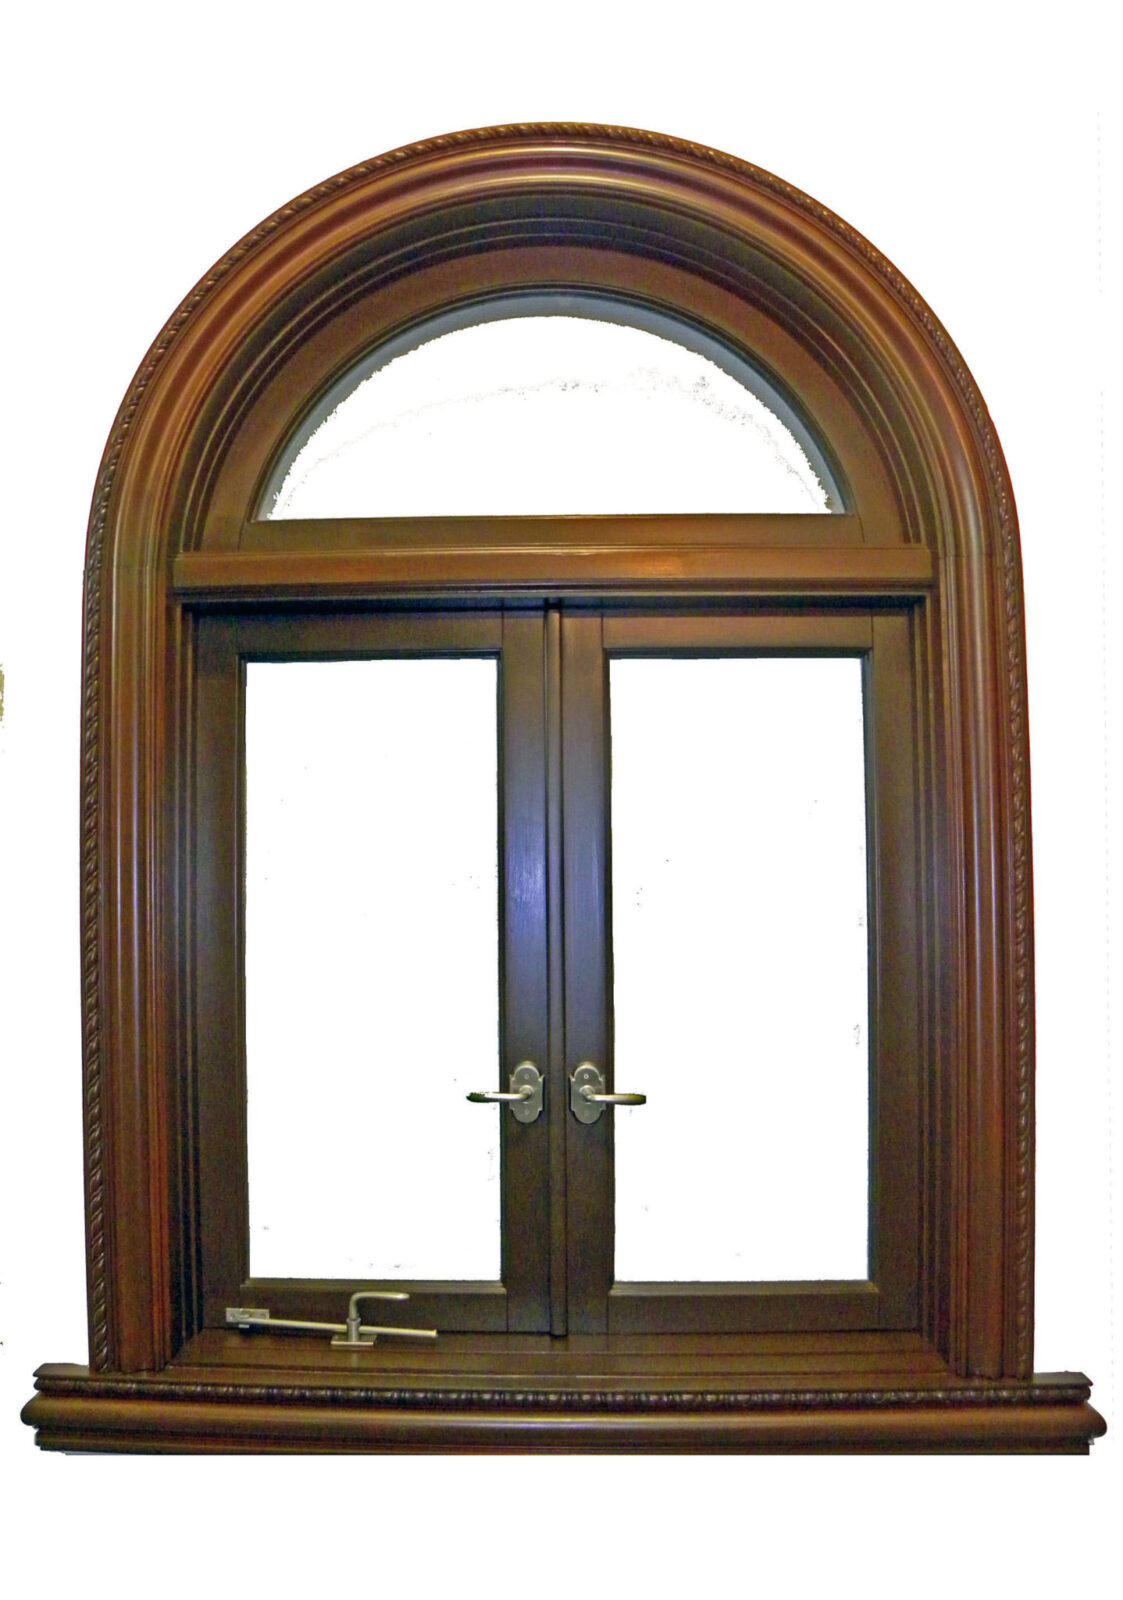 MARATHON KEY MAHOGANY CASEMENT WINDOWS